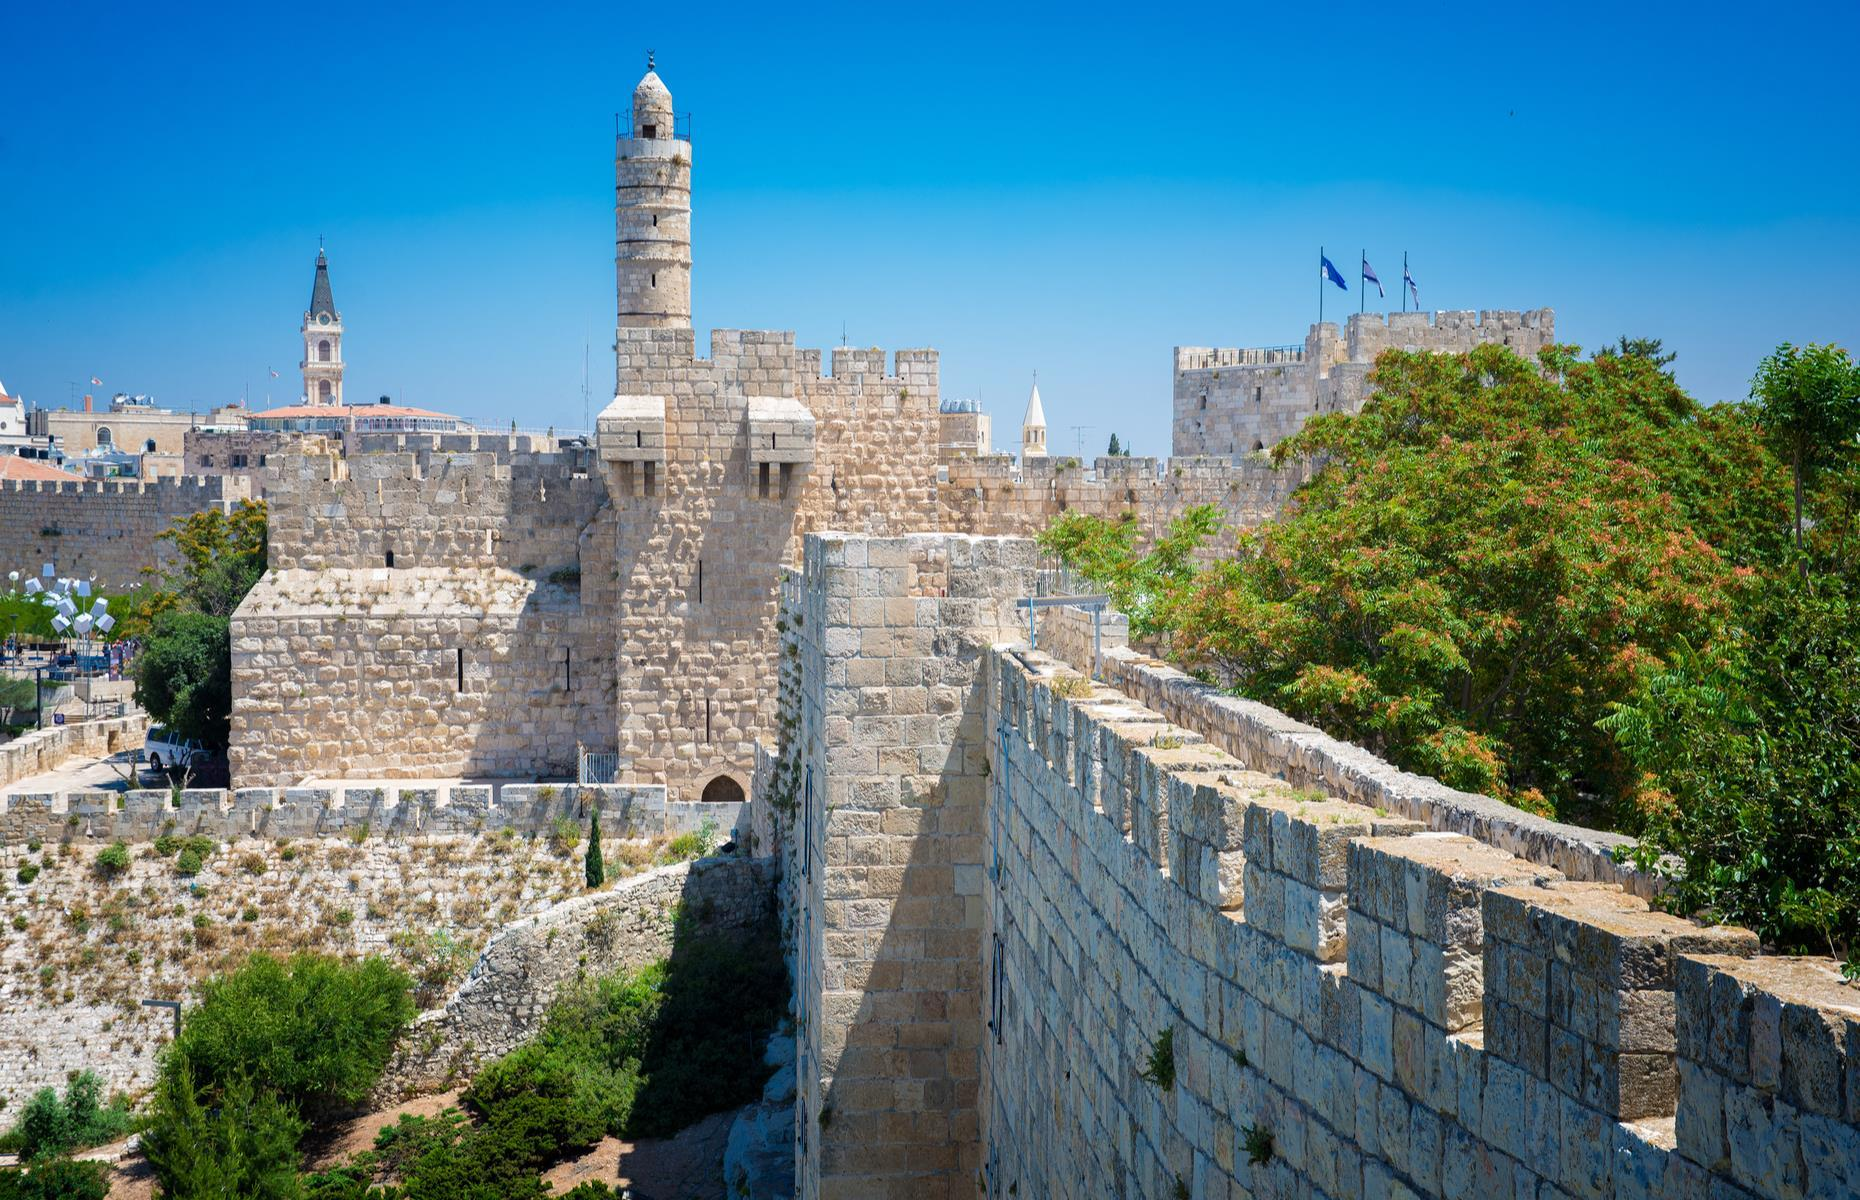 "Slide 19 of 53: A holy city for Judaism, Christianity and Islam, this age-old center is home to innumerable treasures and historic monuments, including the Dome of the Rock and the Wailing Wall. It has been on the danger list since 1982. Besides political instability, the site is also threatened by urbanization. In 2007, UNESCO stated its concern about the ""obstacles and practices, such as archaeological excavations or new constructions"" around the Old City."